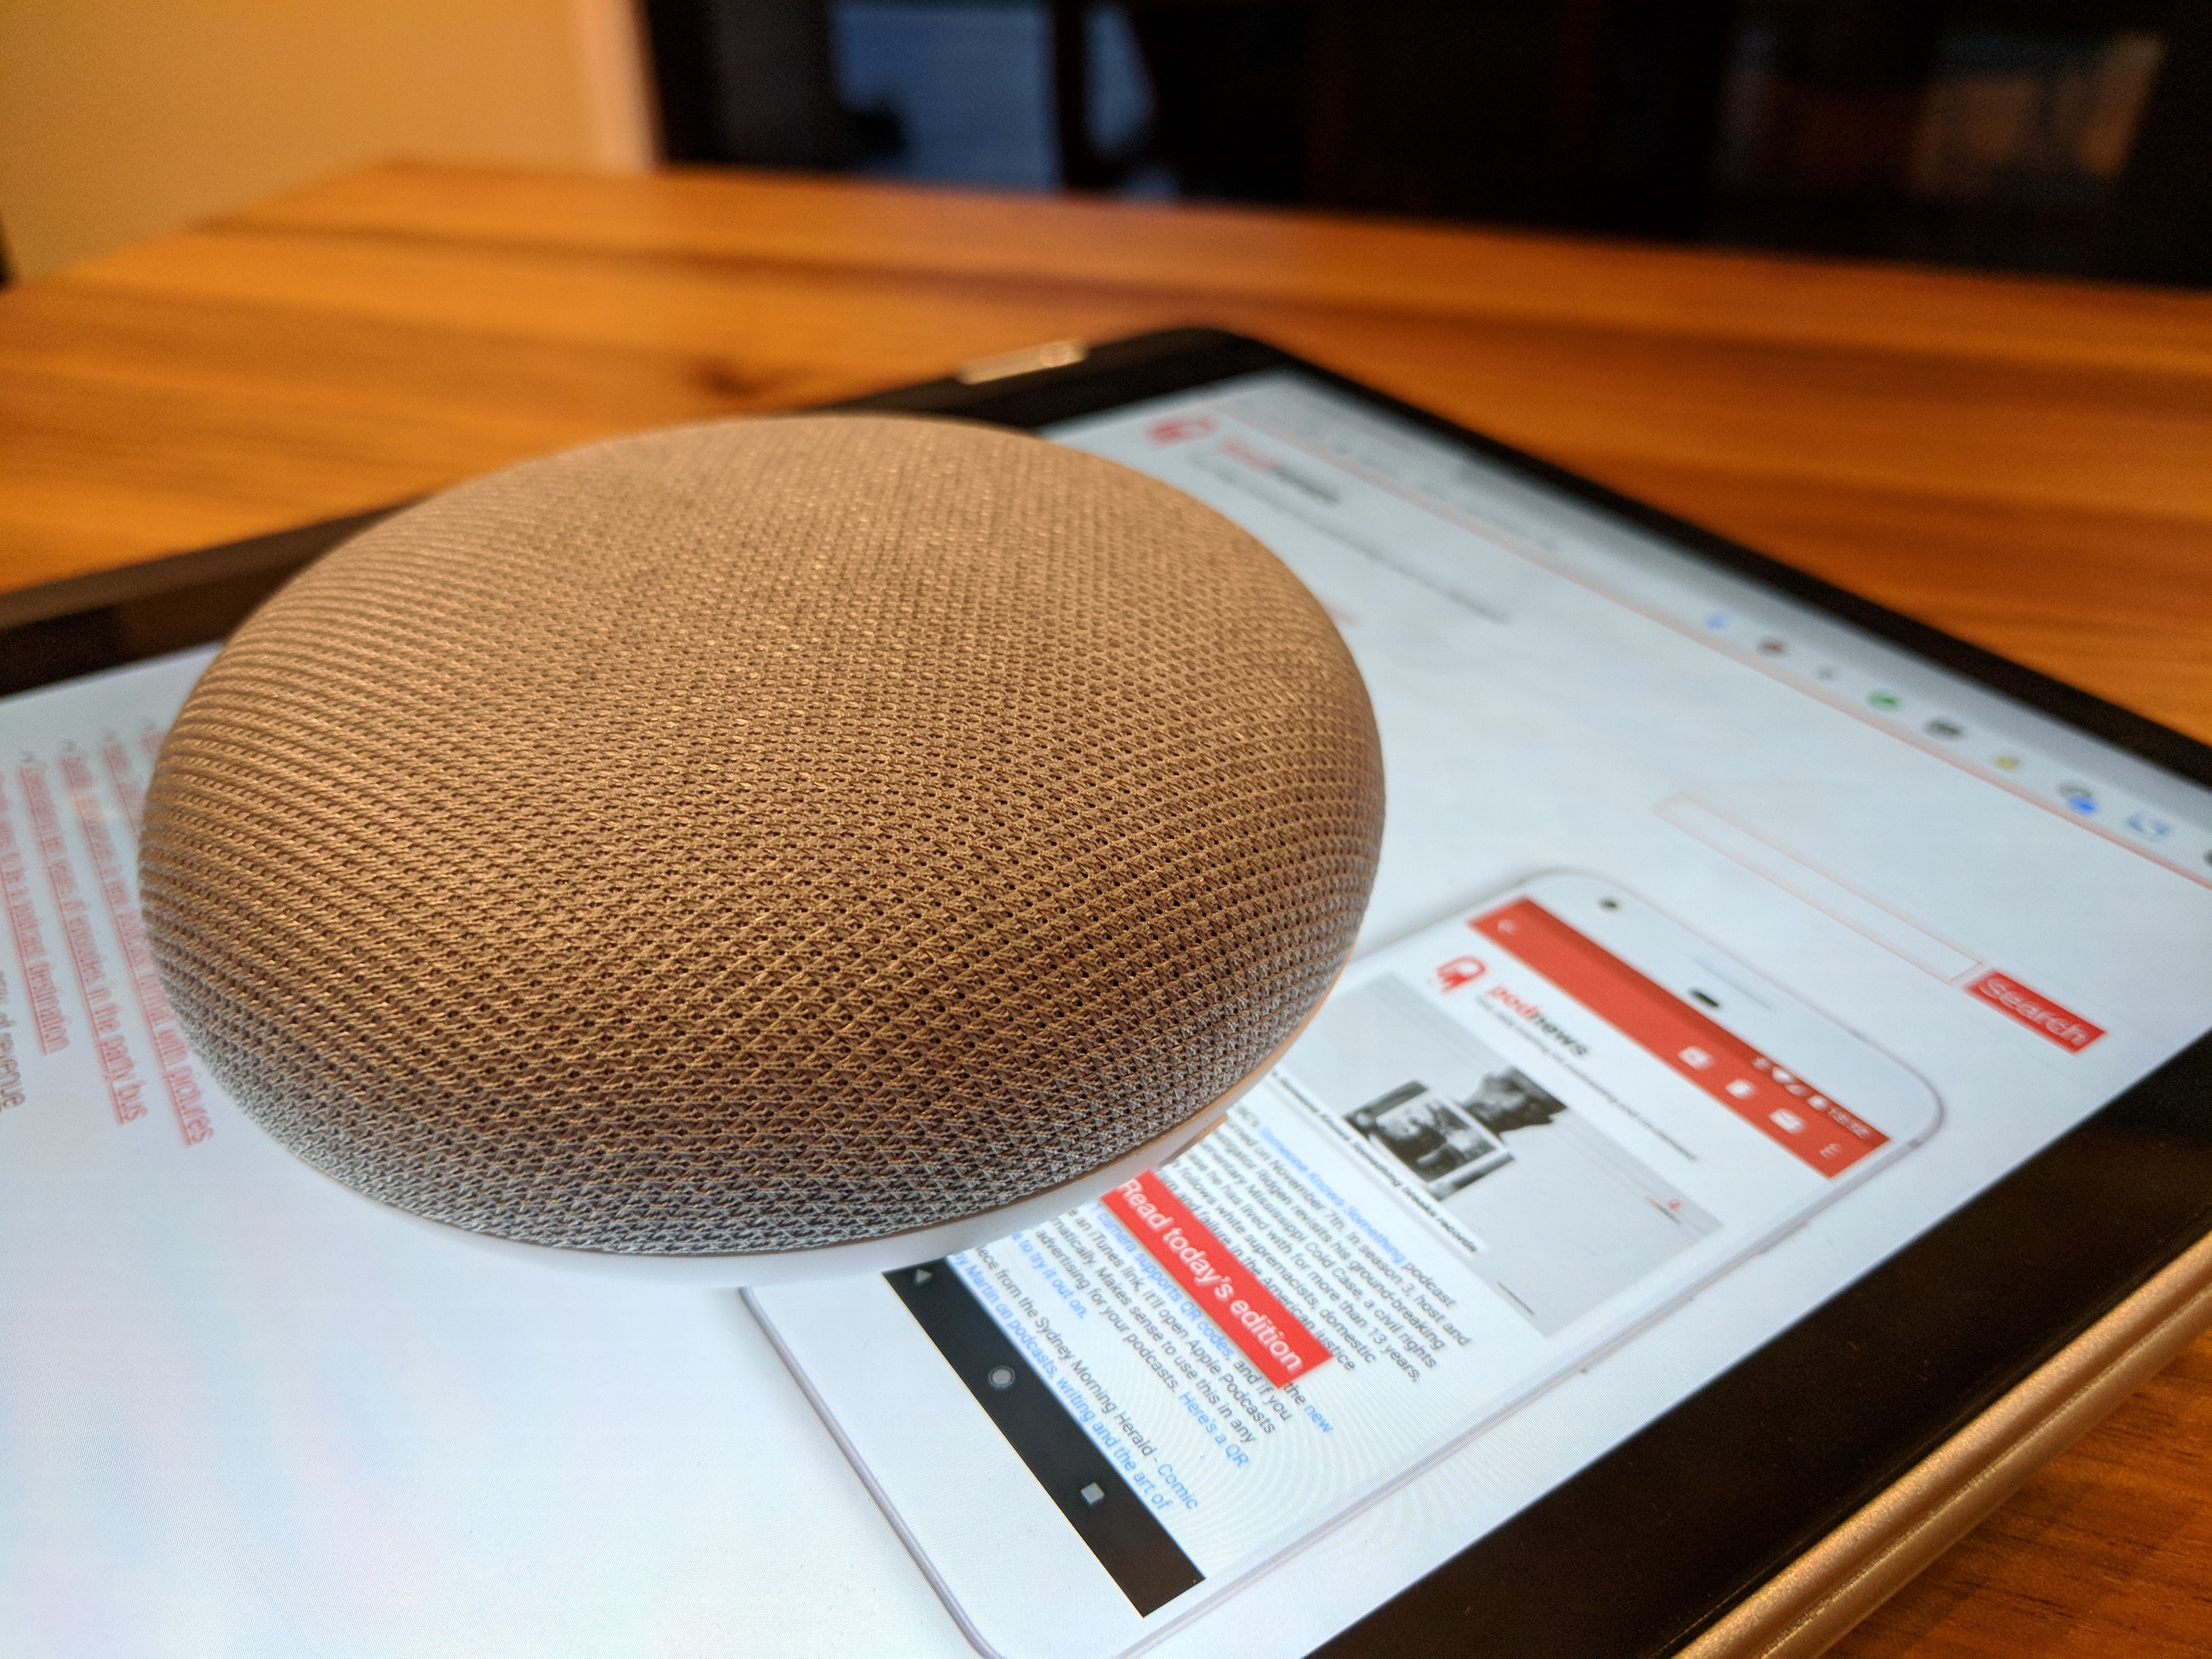 Can a smart speaker replace a kitchen radio? - James